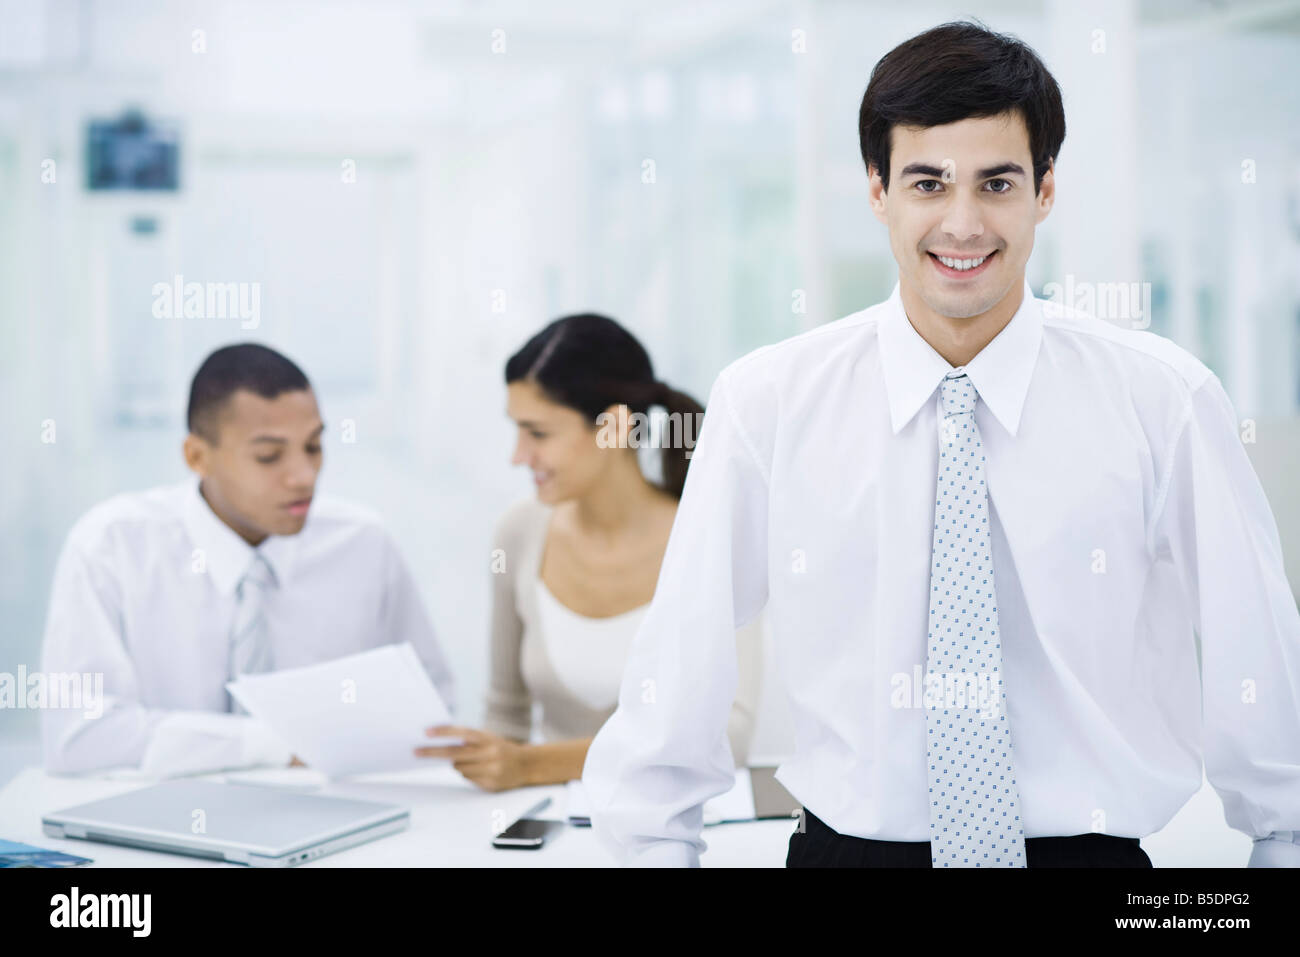 Businessman smiling at camera, colleagues working in background - Stock Image